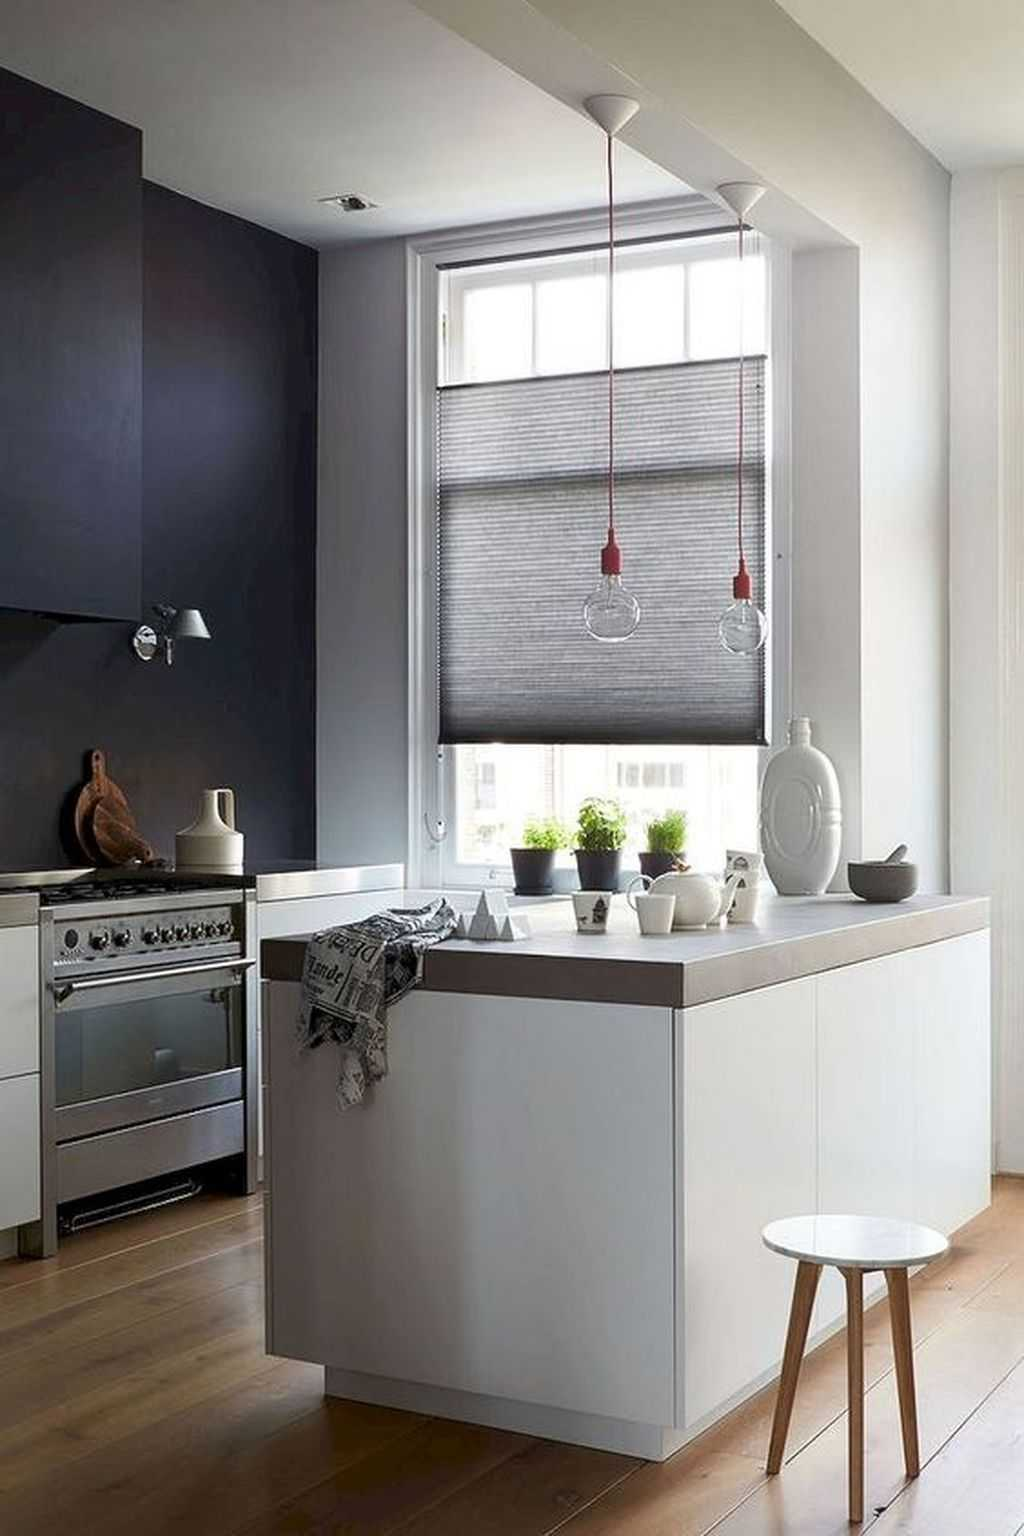 Monochromatic Minimalist Kitchen With Concrete Countertops And Bulbs On Red Cords